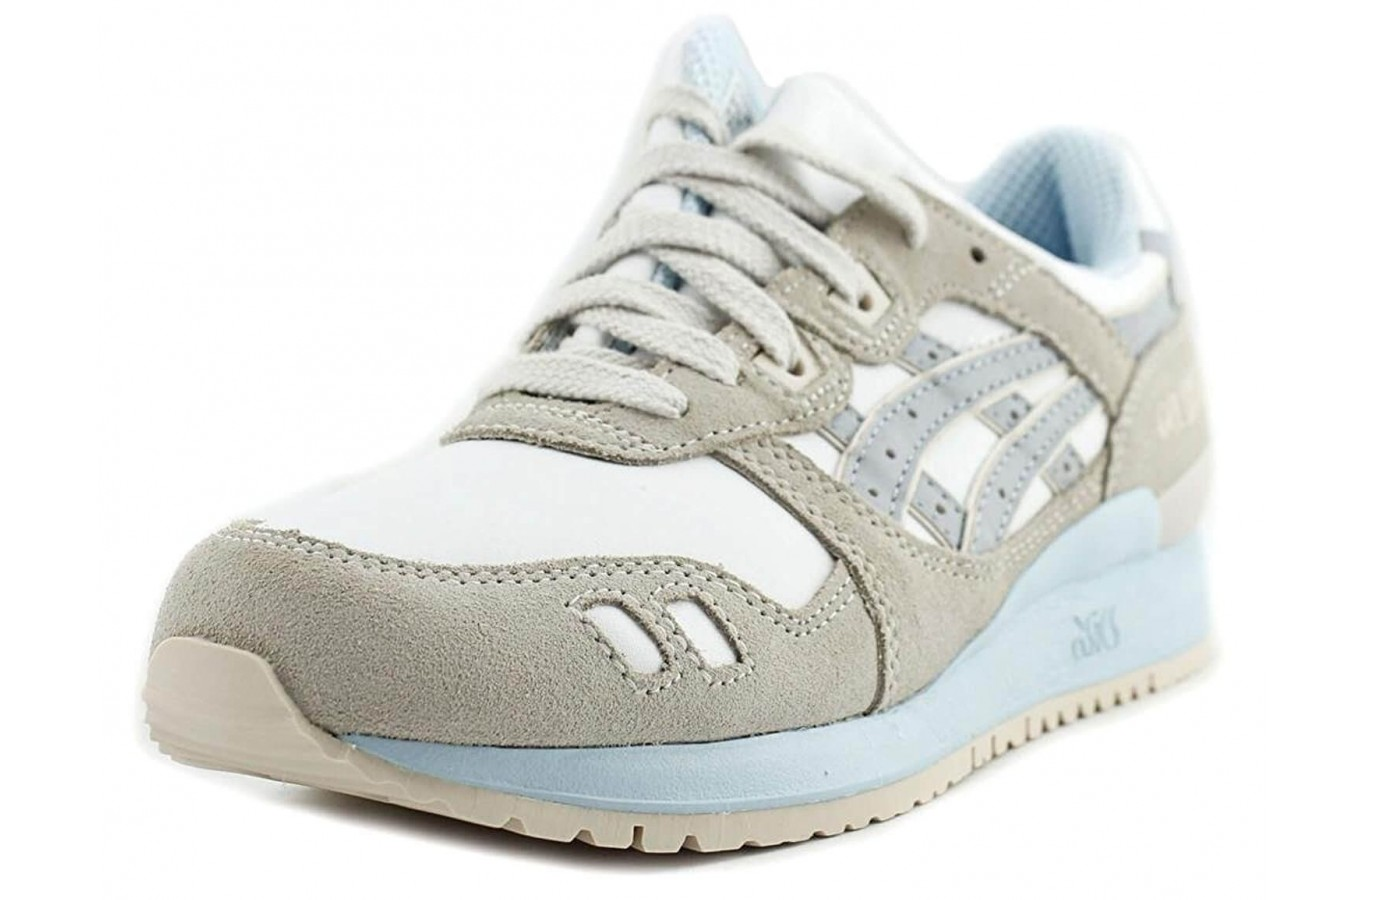 save off 0e501 a0db7 The Asics Gel Lyte III features GEL cushioning ...